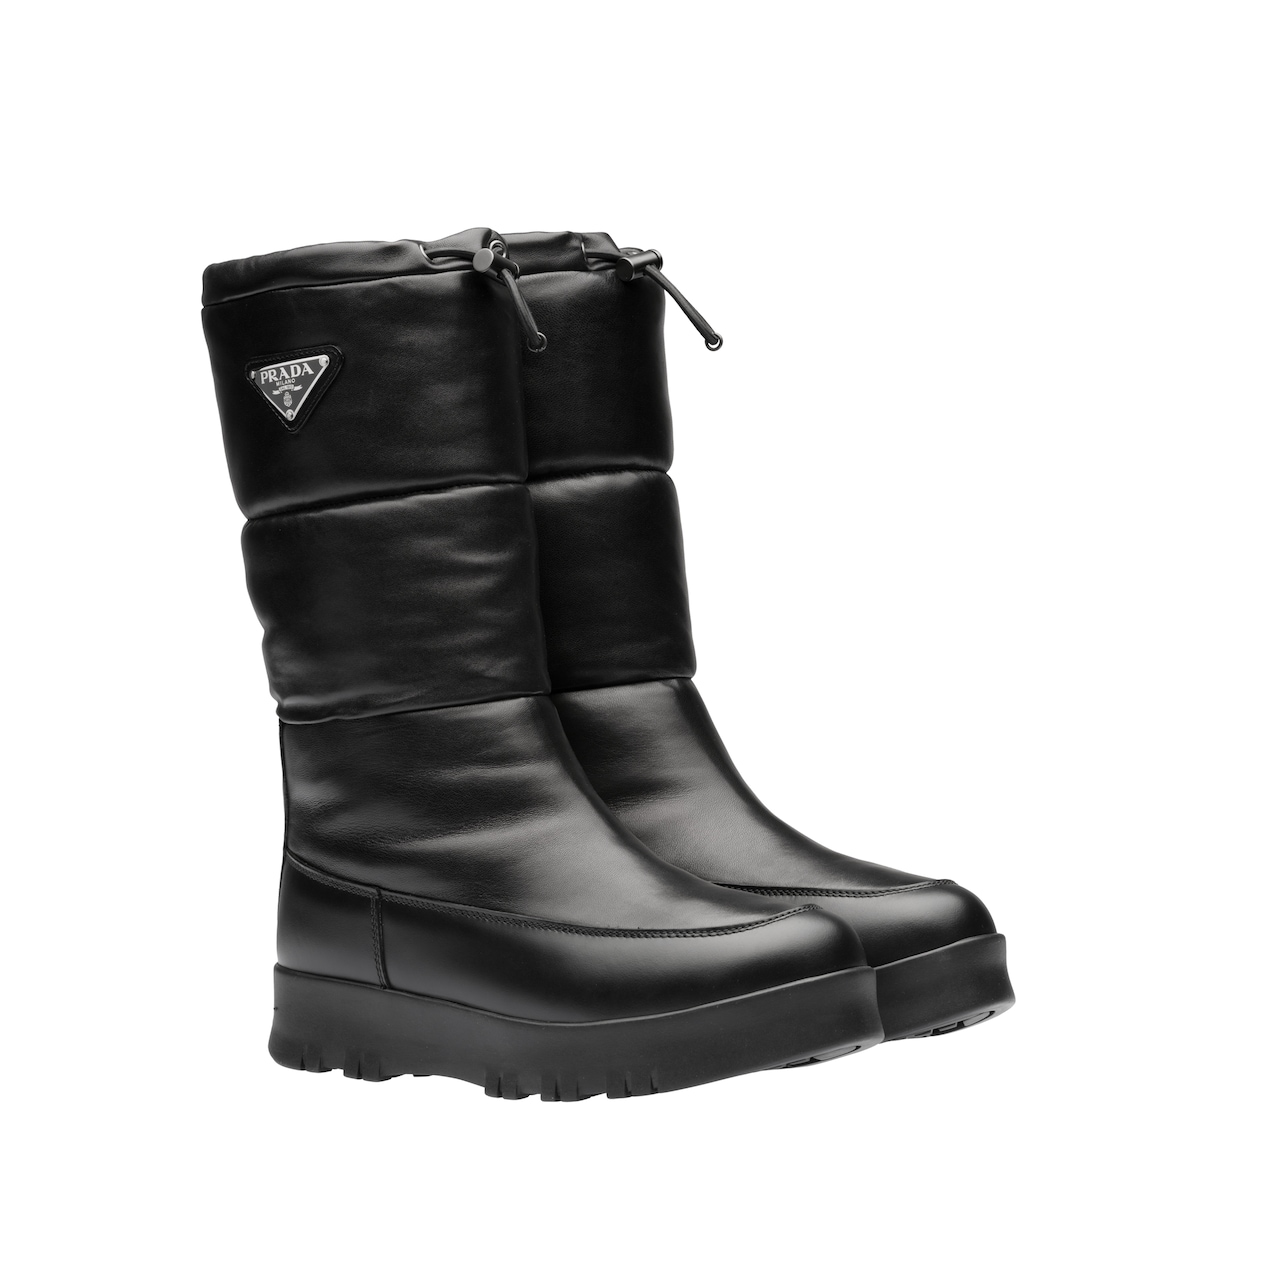 Nappa leather moon boots 2